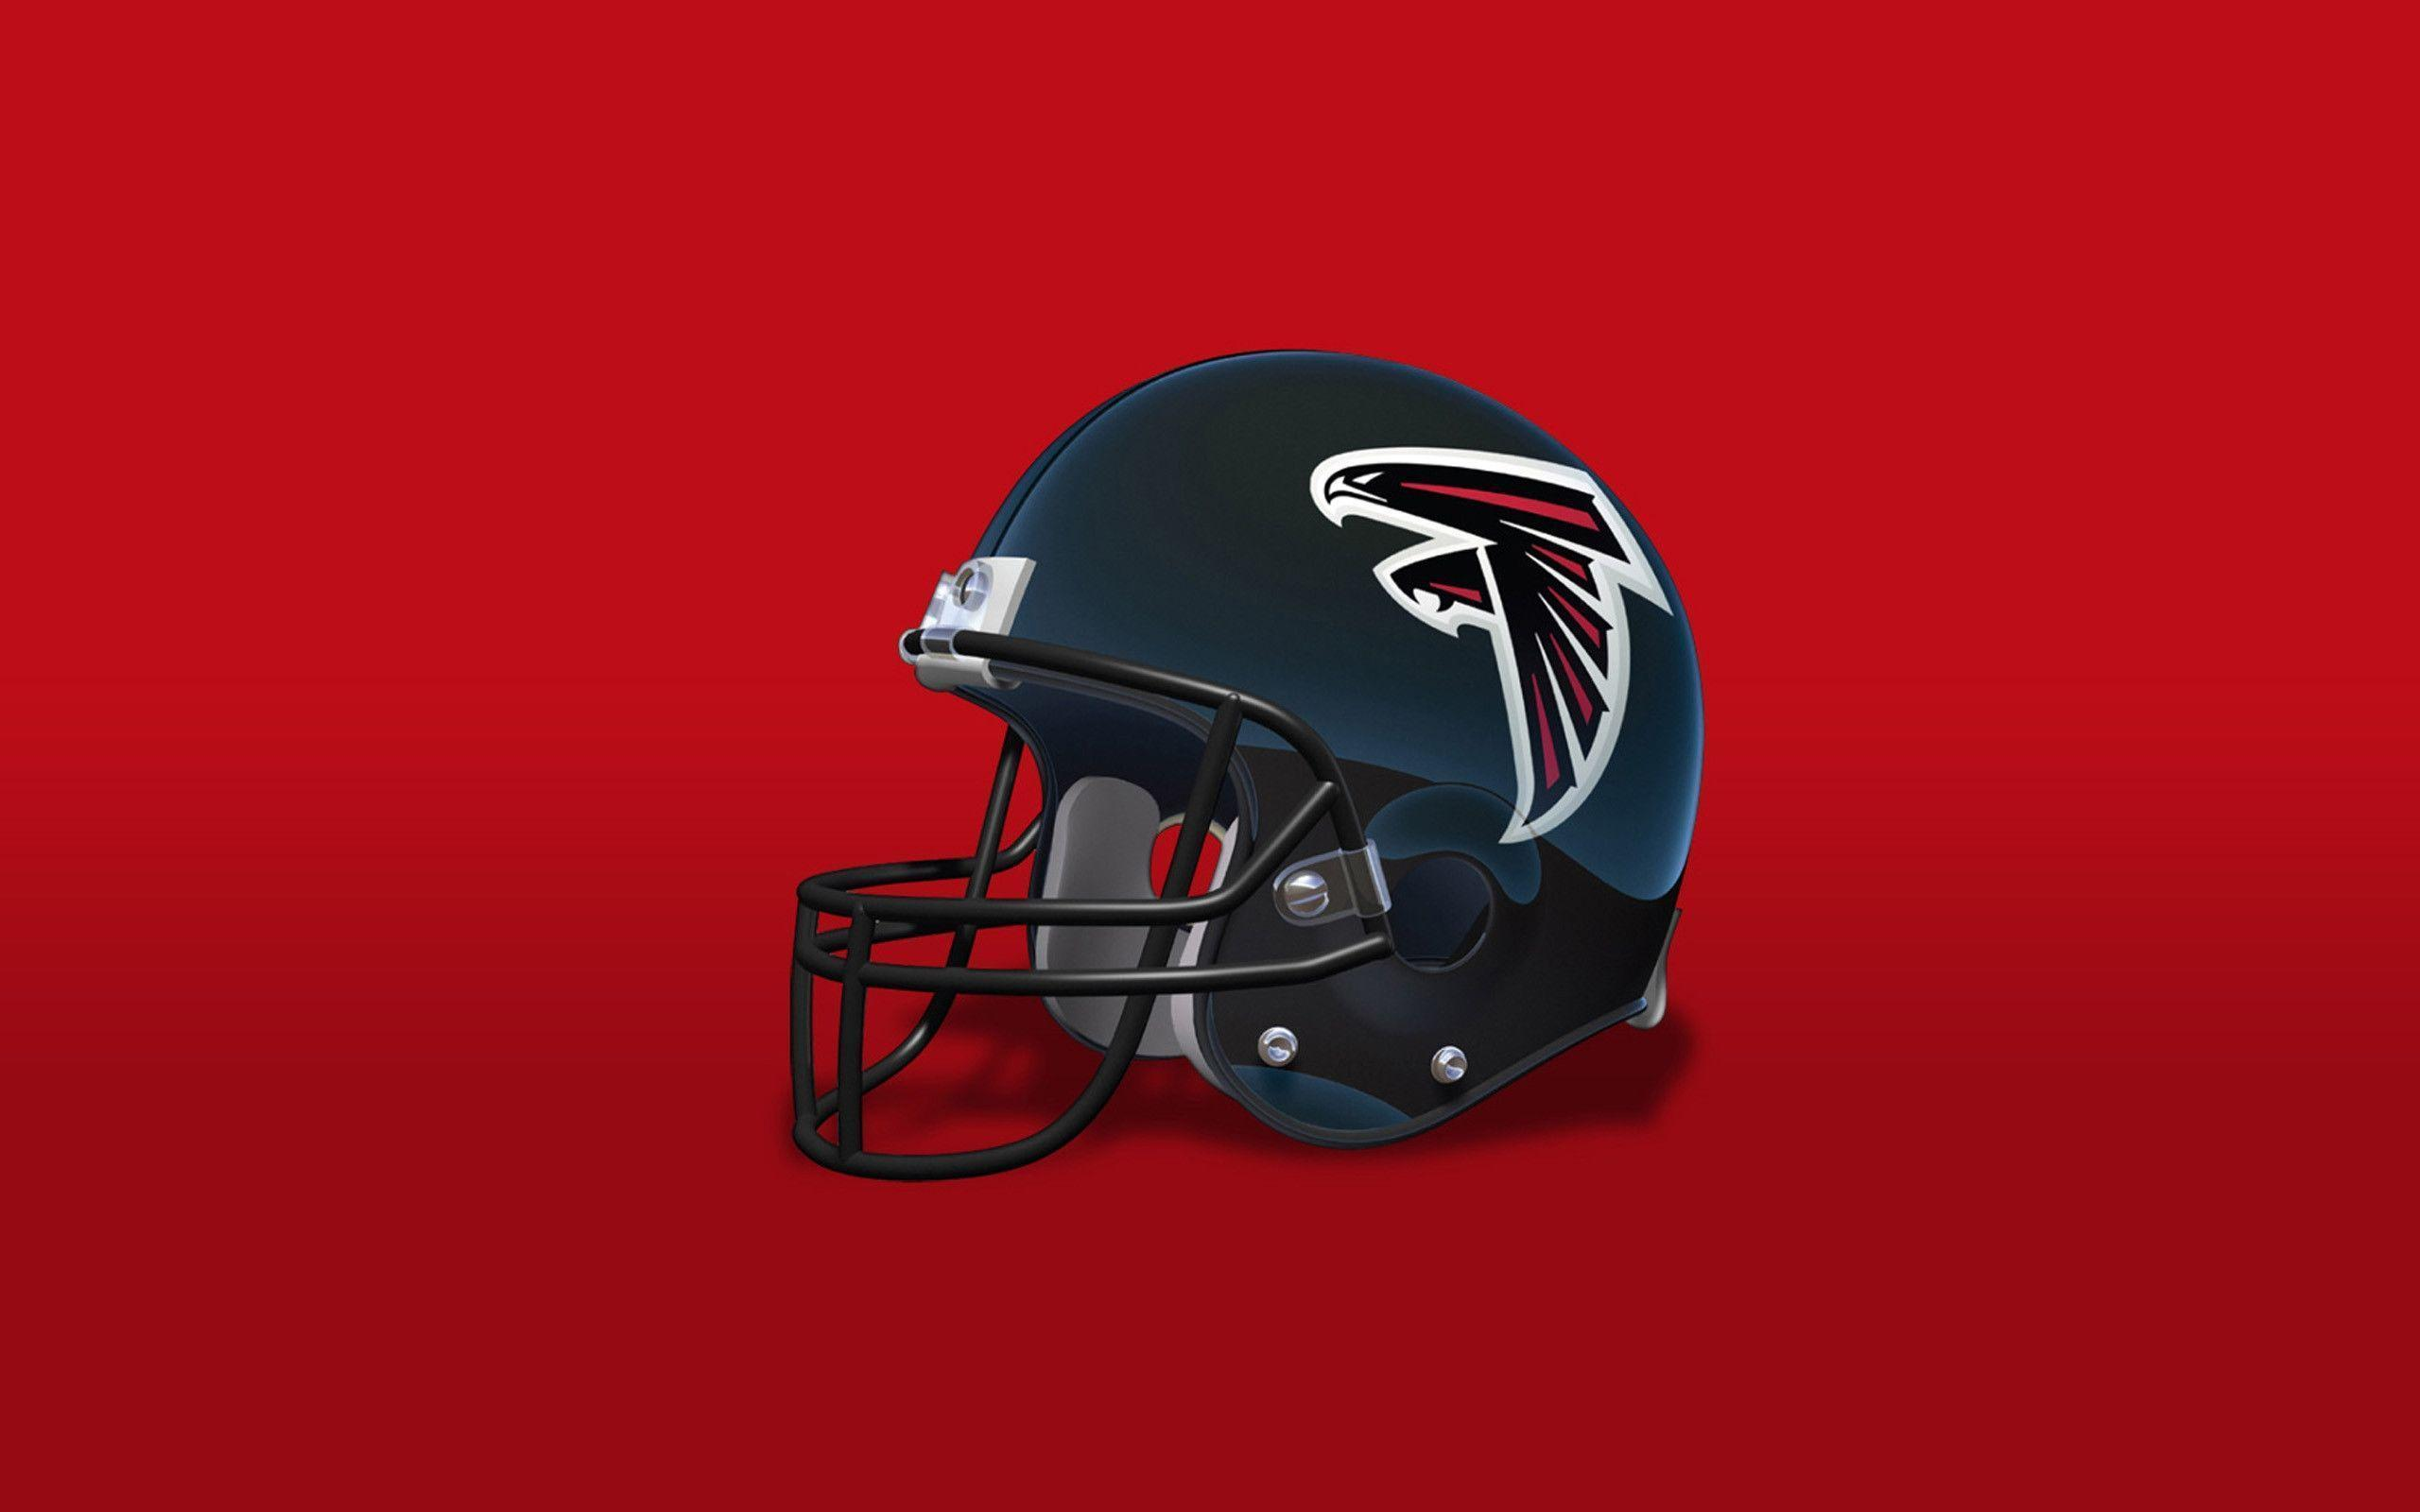 atlanta falcons logos pixels red : Desktop and mobile wallpapers